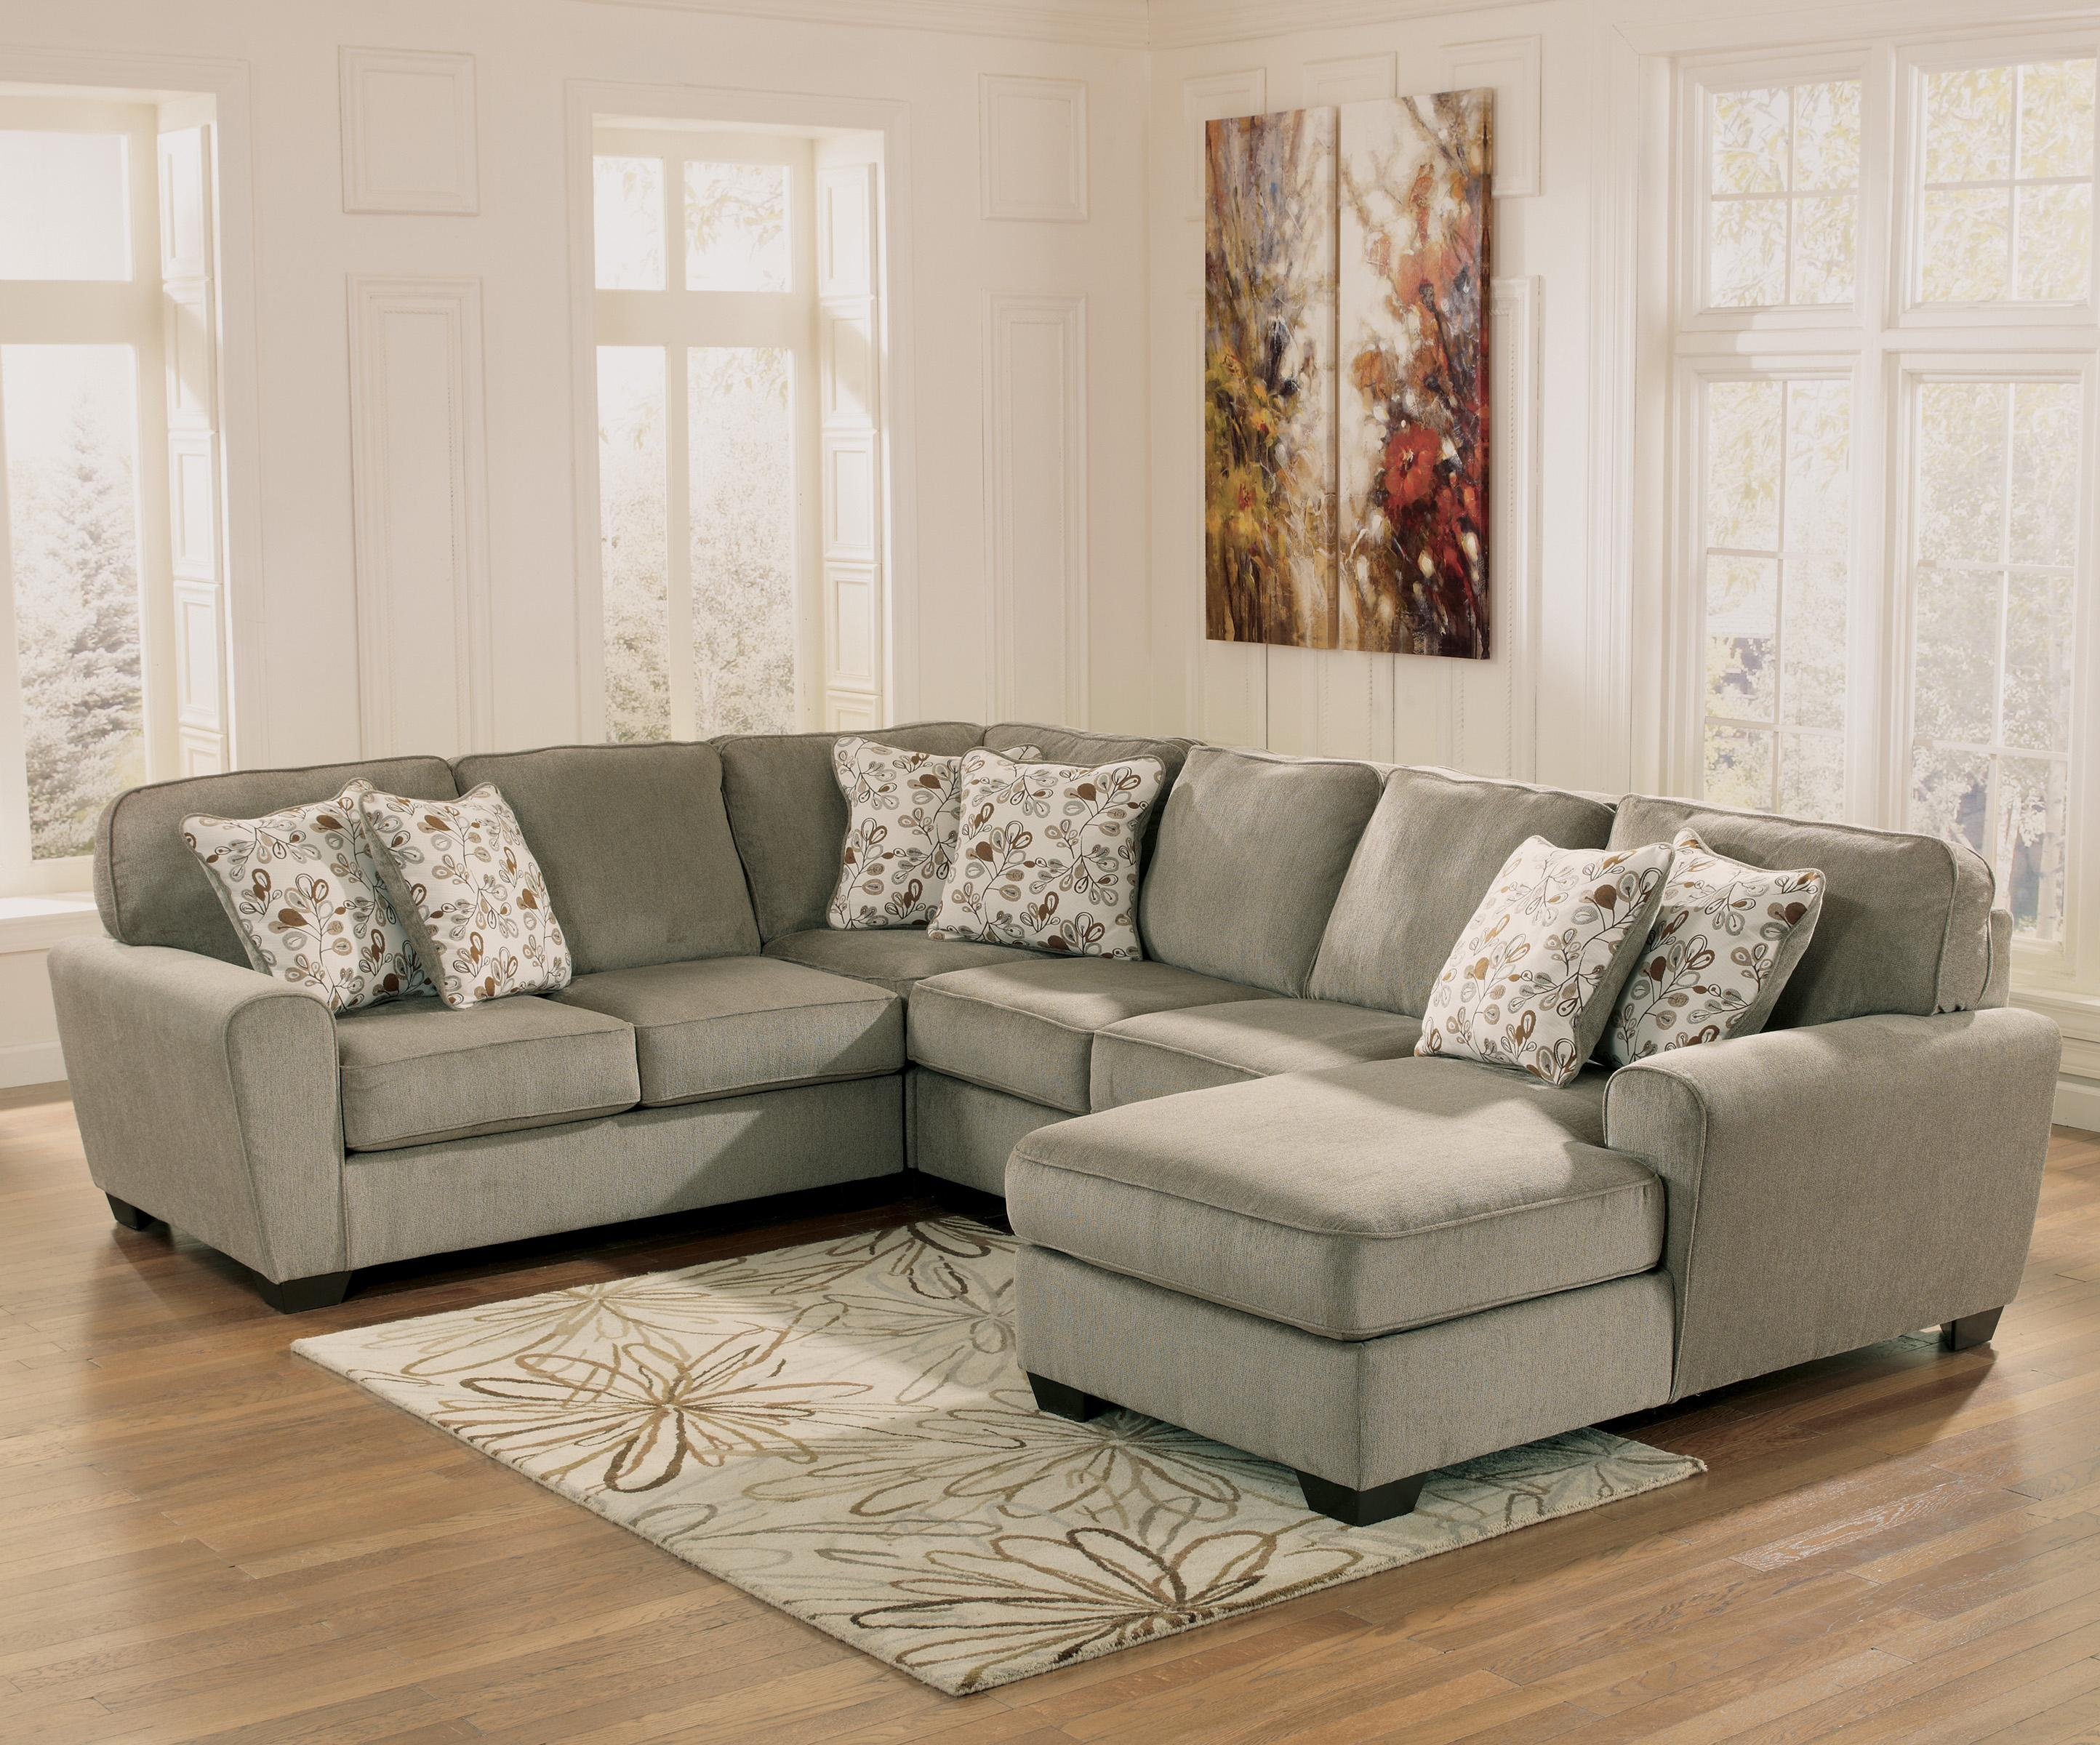 Patola Park - Patina 4-Piece Small Sectional with Right Chaise by Ashley Furniture at Lapeer Furniture & Mattress Center